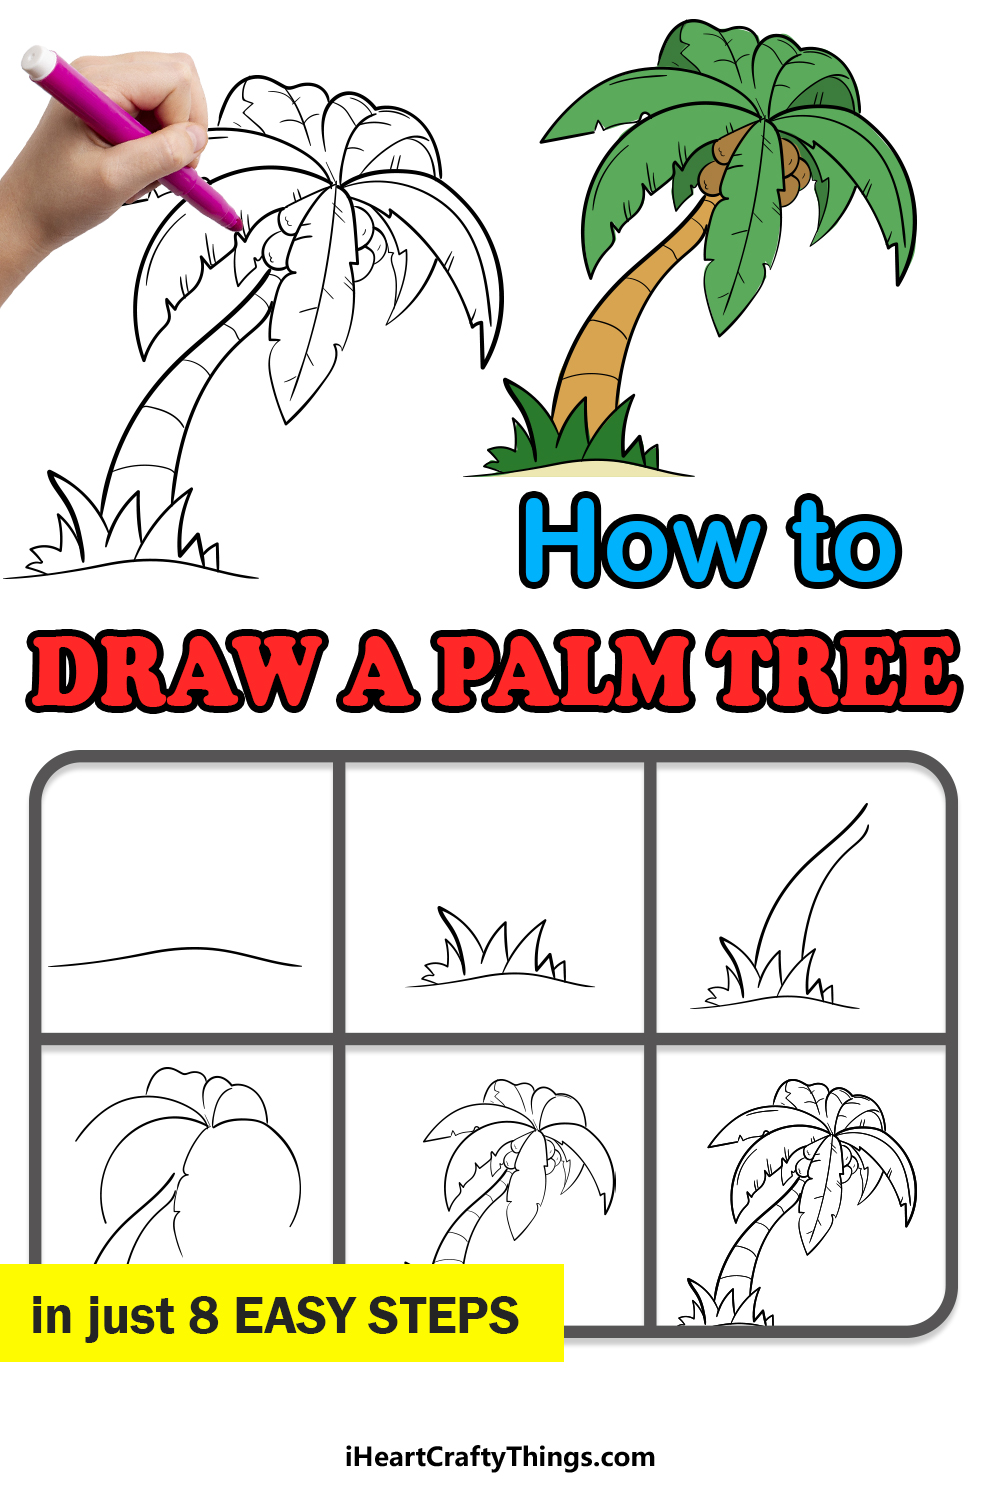 how to draw a palm tree in 8 easy steps